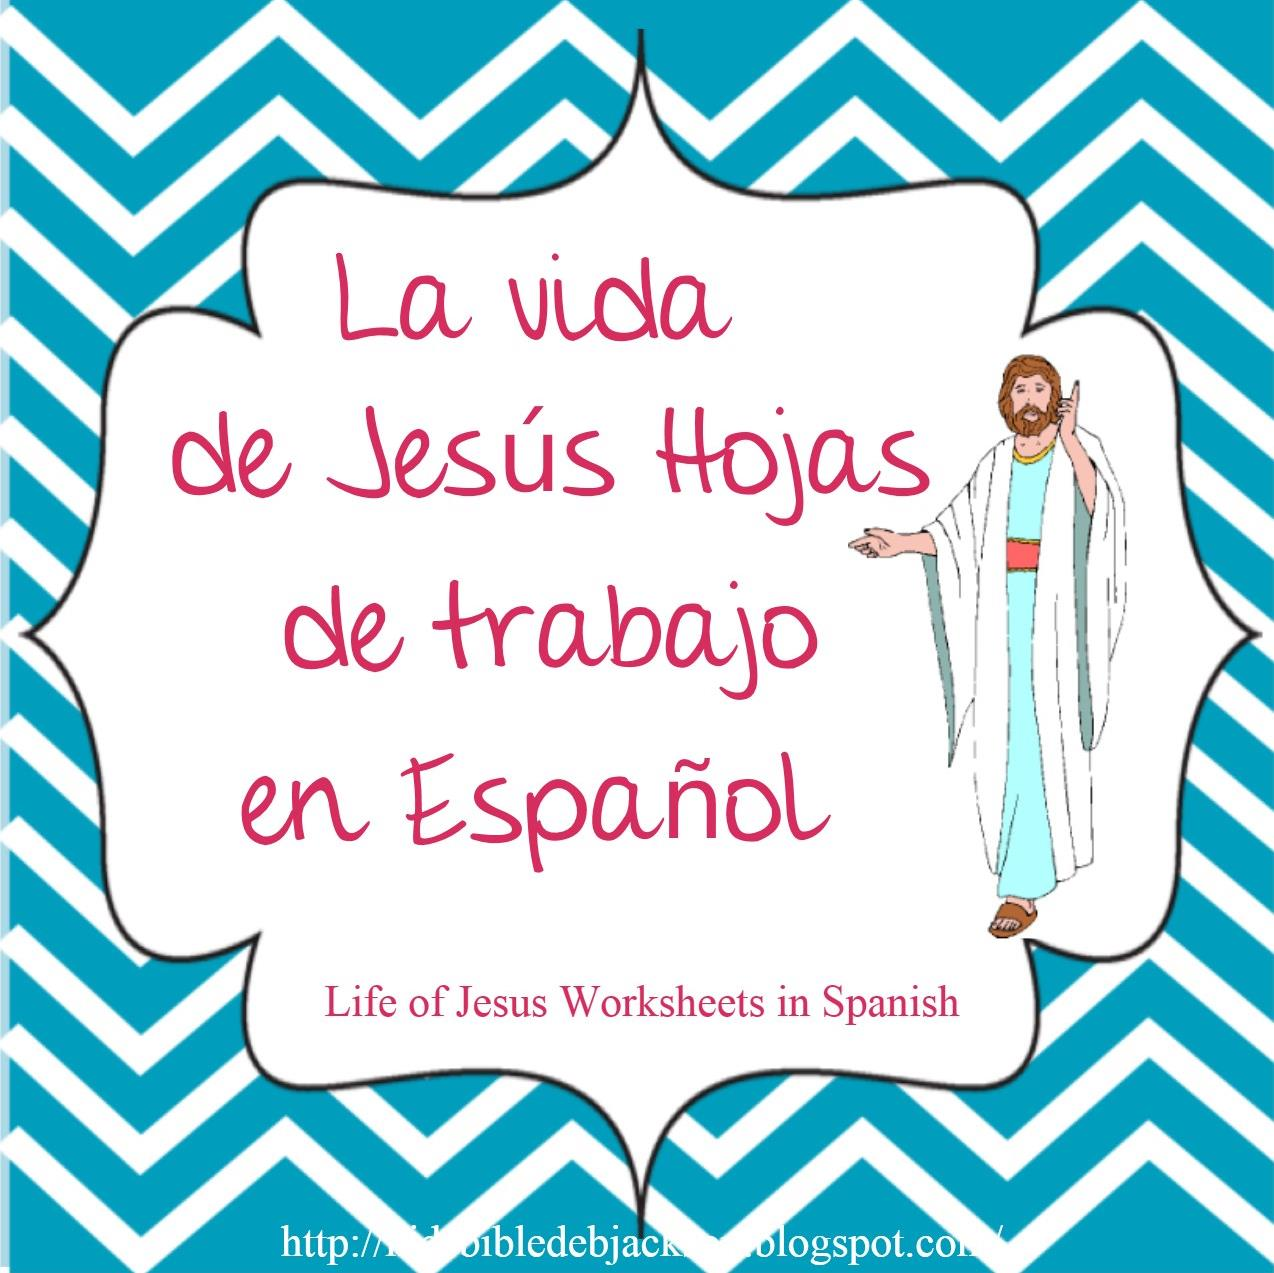 http://kidsbibledebjackson.blogspot.com/2014/06/life-of-jesus-worksheets-in-spanish.html